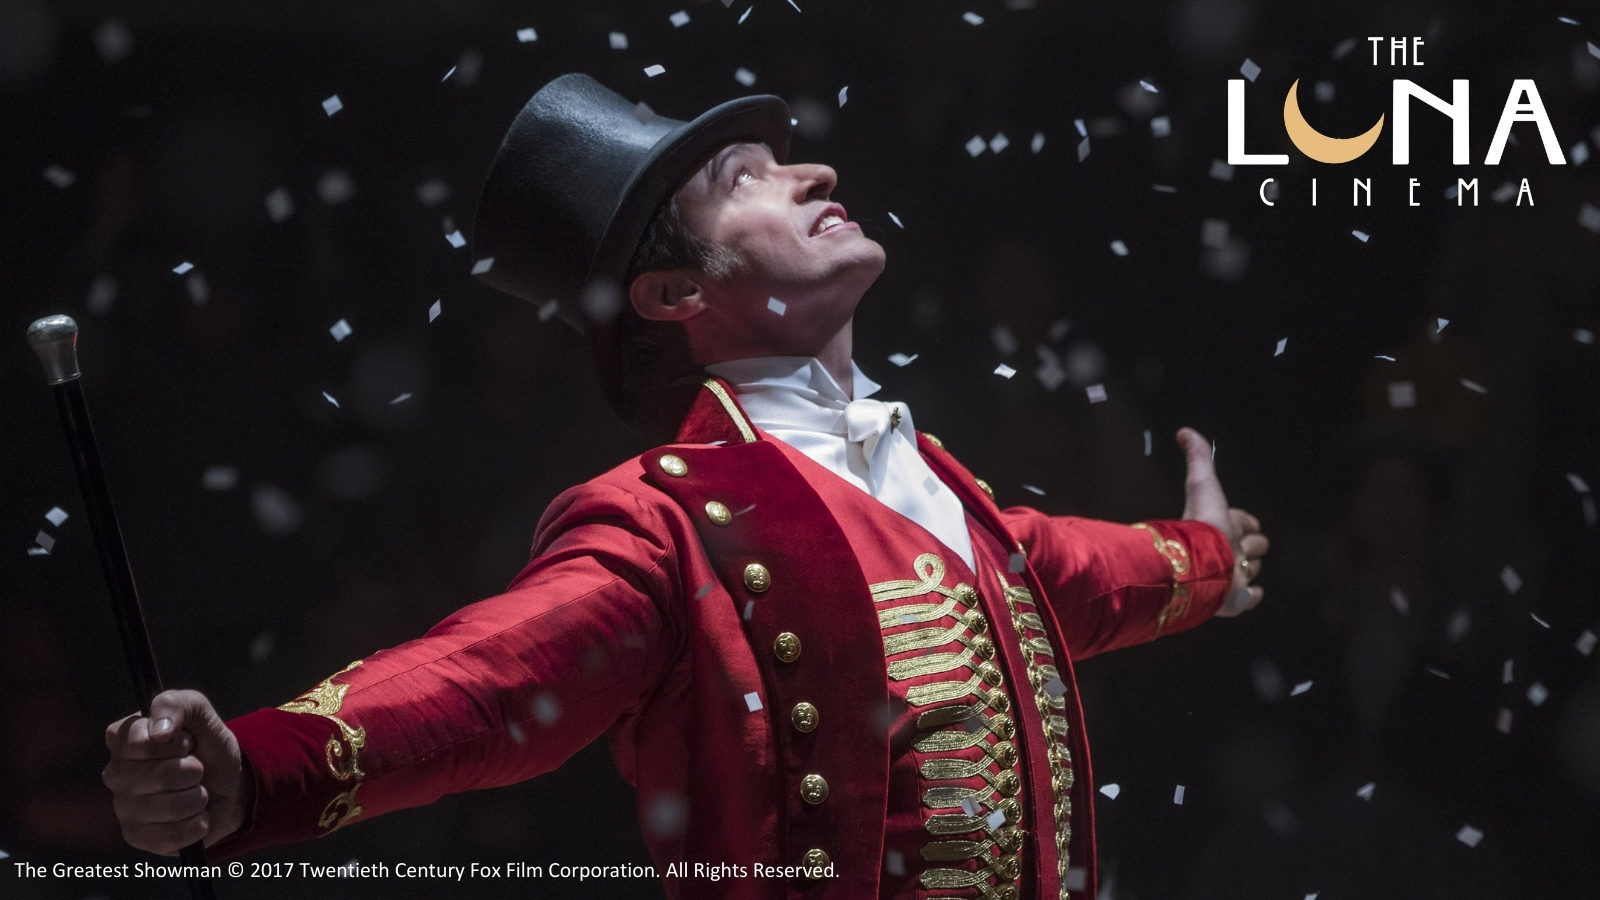 The Greatest Showman © 2017 Twentieth Century Fox Film Corporation. All Rights Reserved.